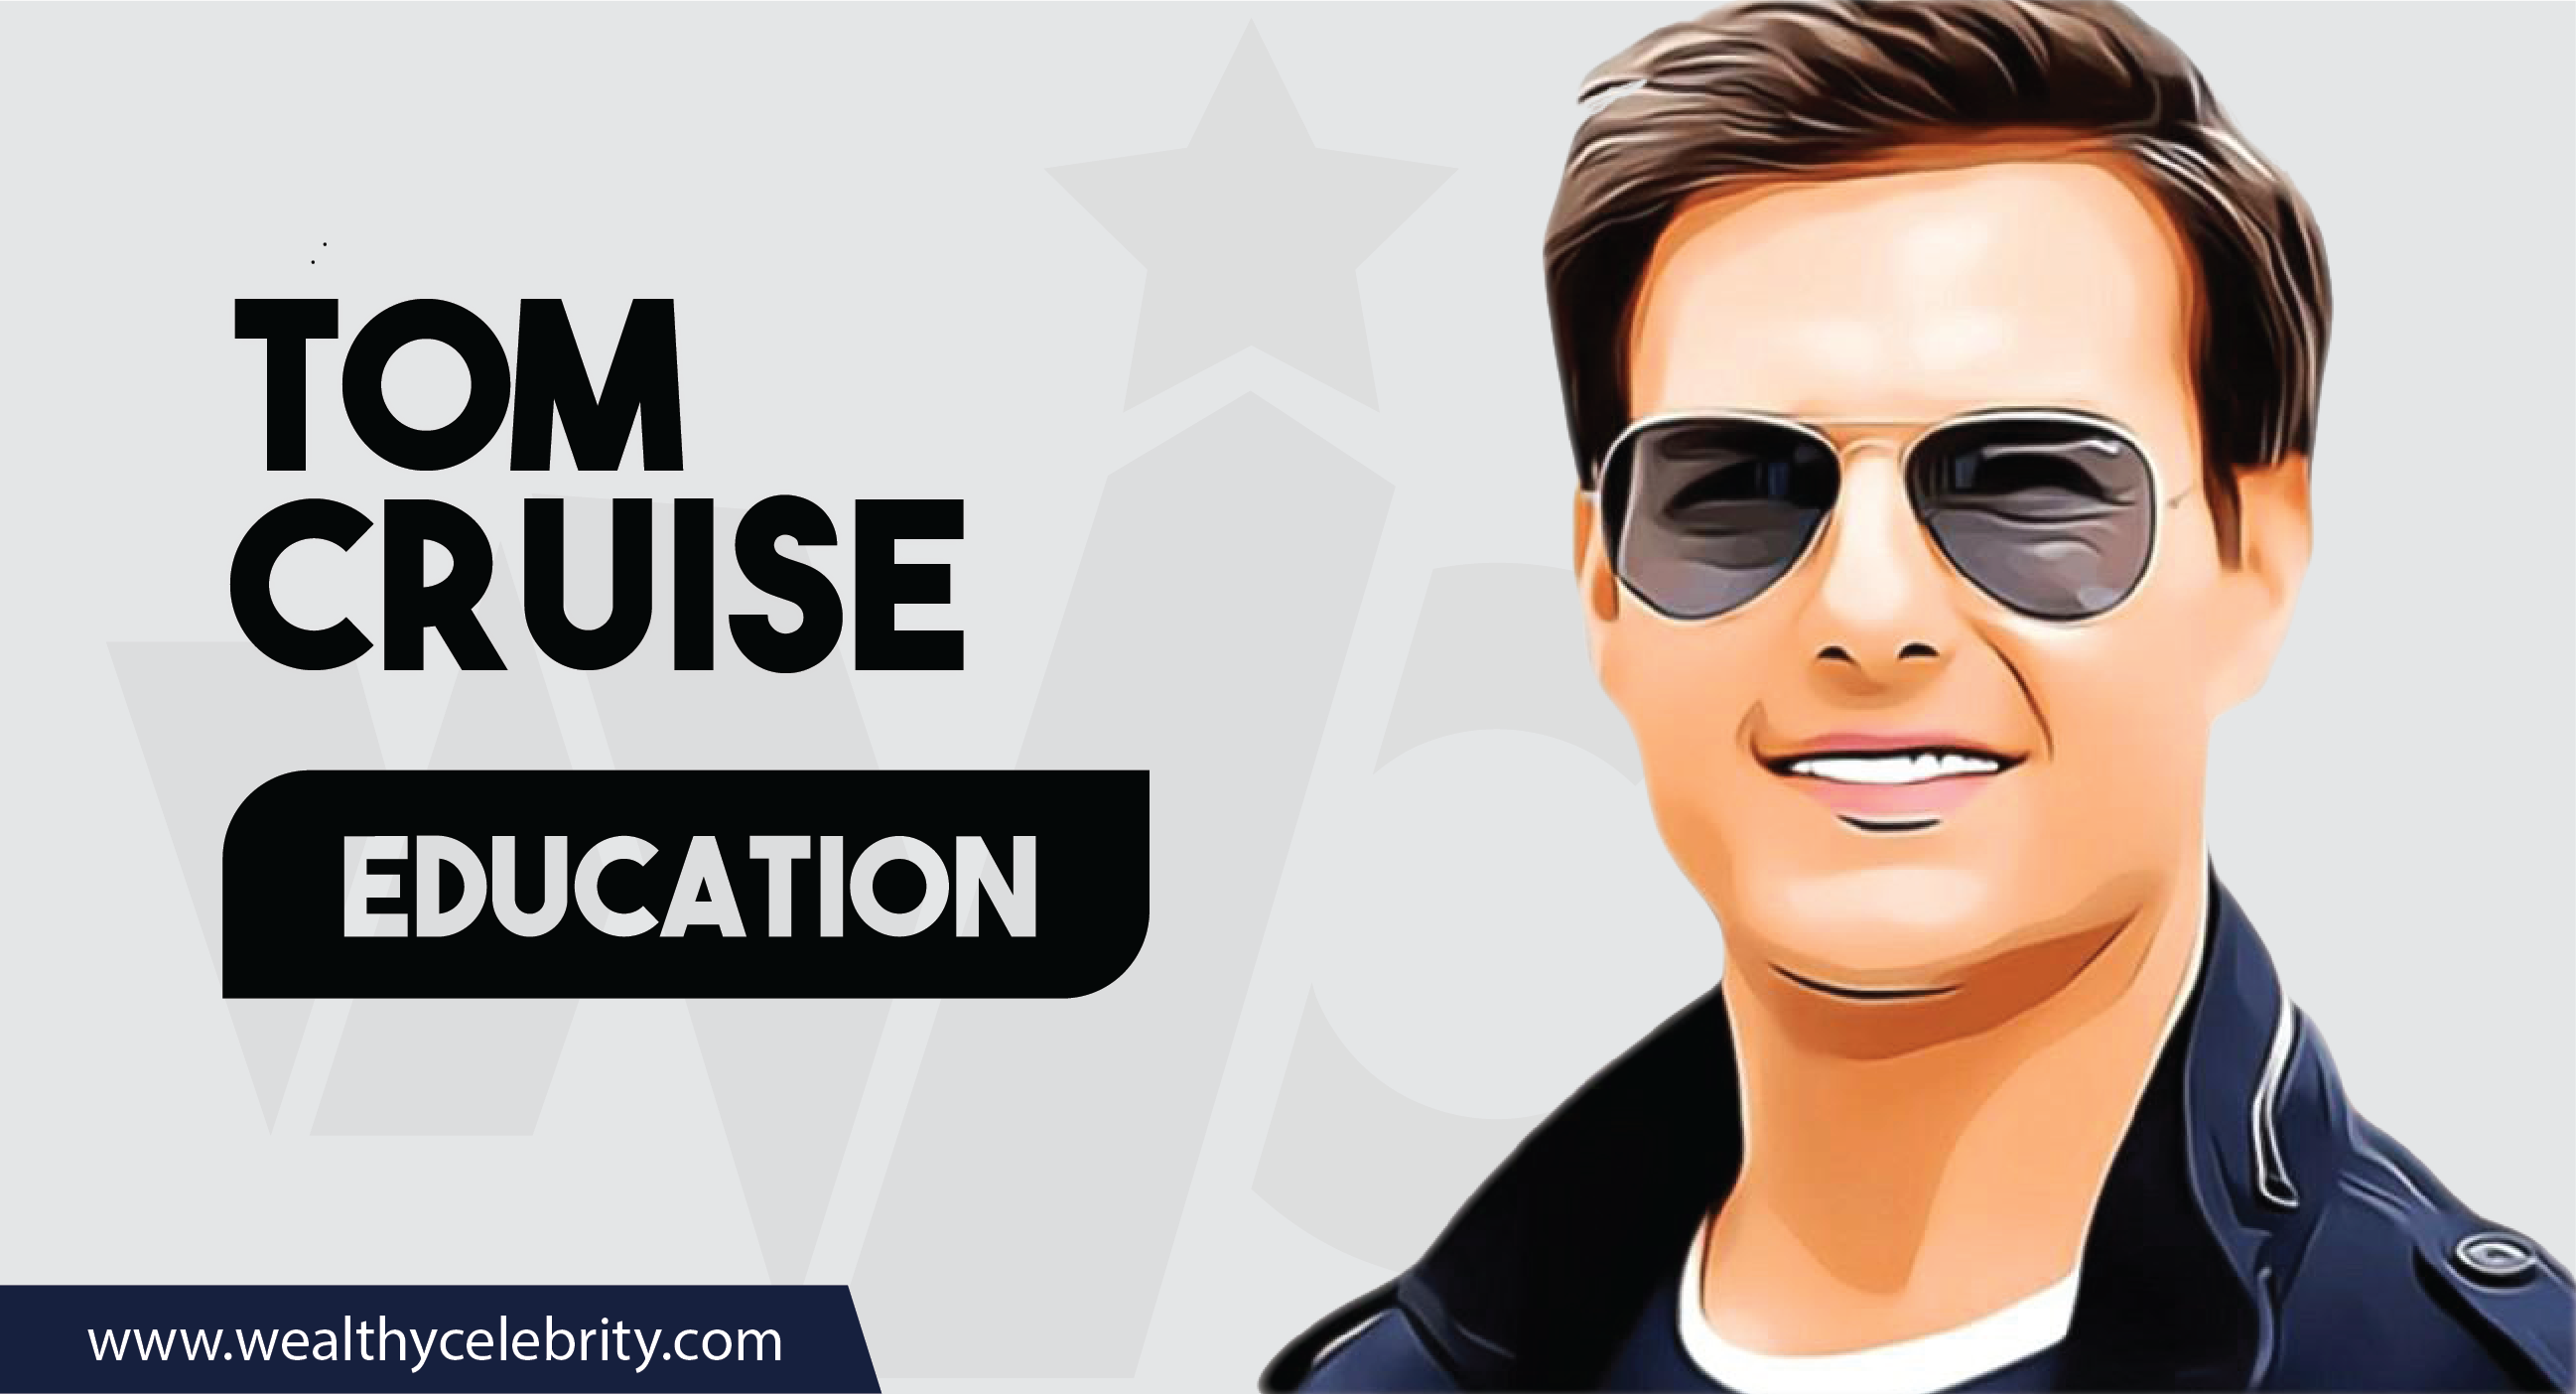 Tom Cruise_Education